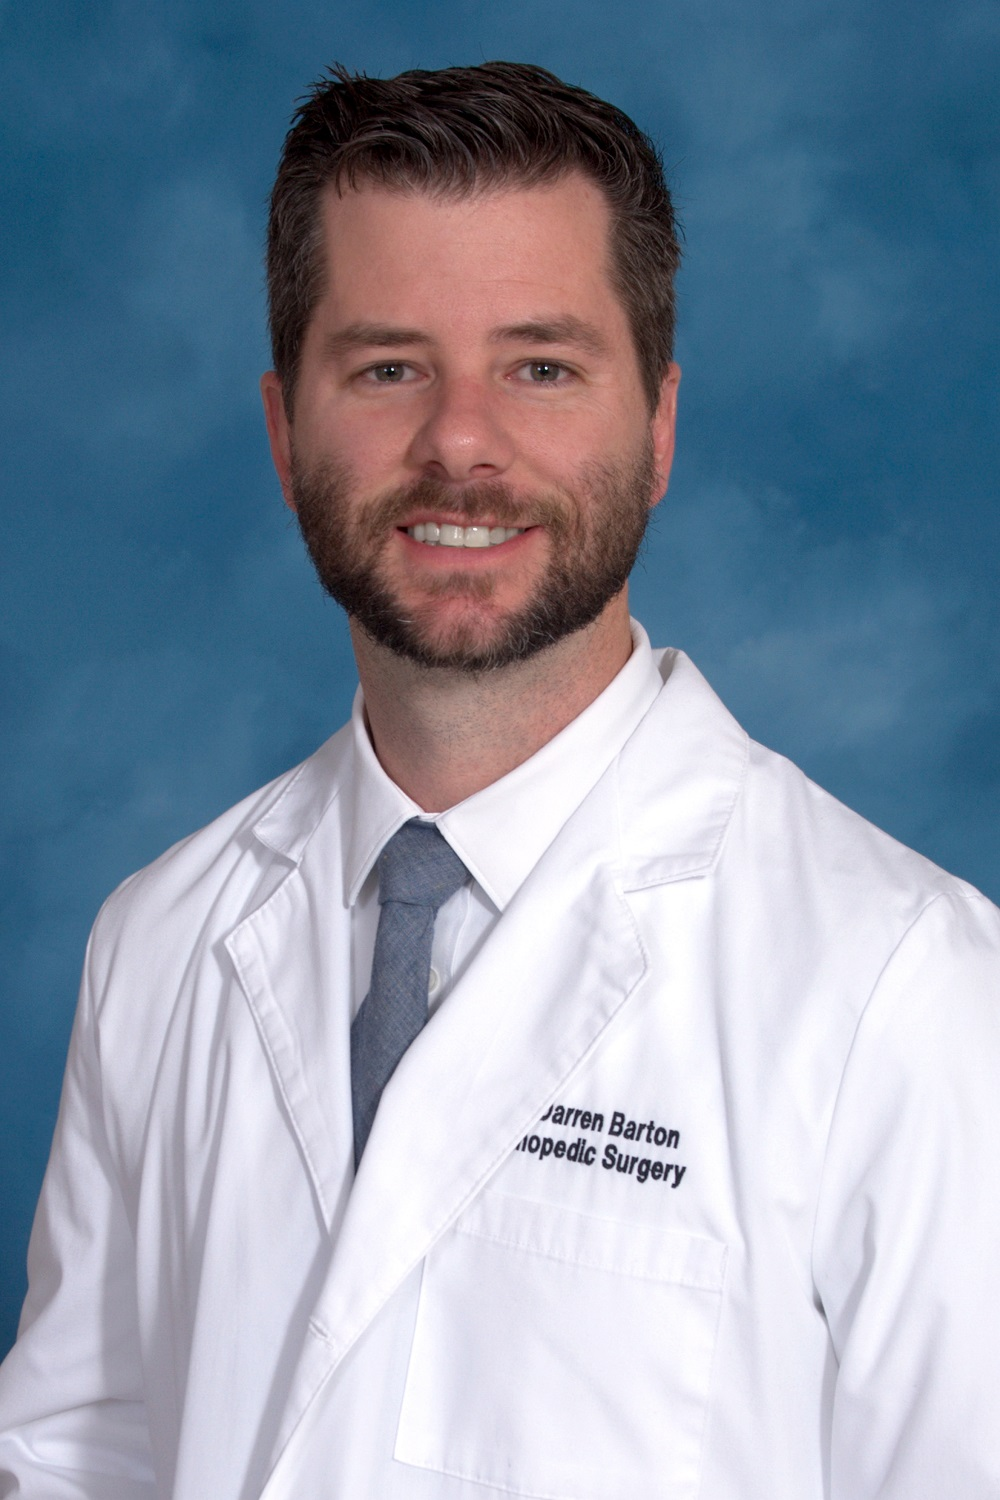 Darren Barton, DO is an orthopedic surgeon and a member of the medical team at Cumberland Orthopedics.